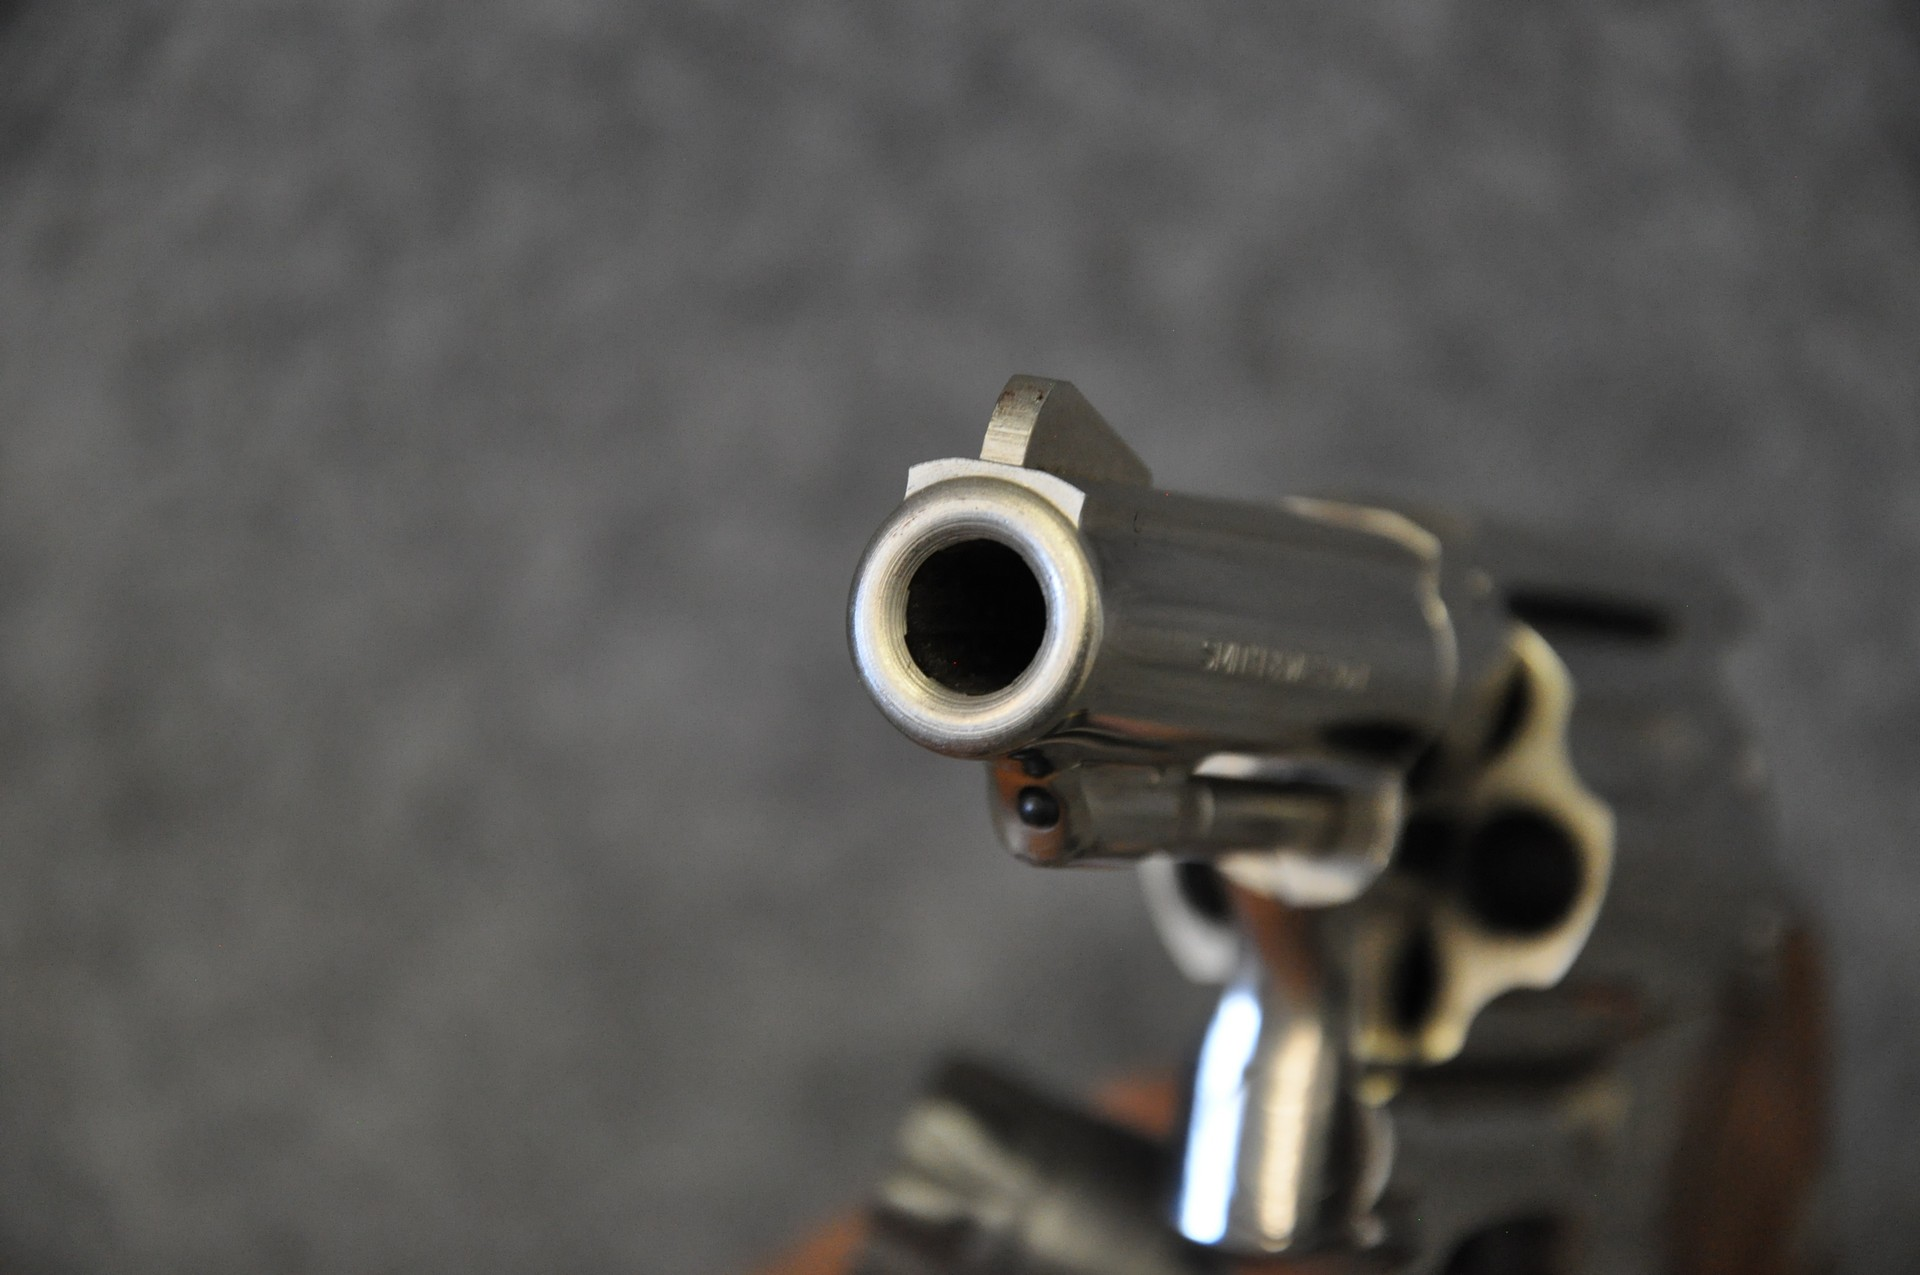 Smith and Wesson 36-1